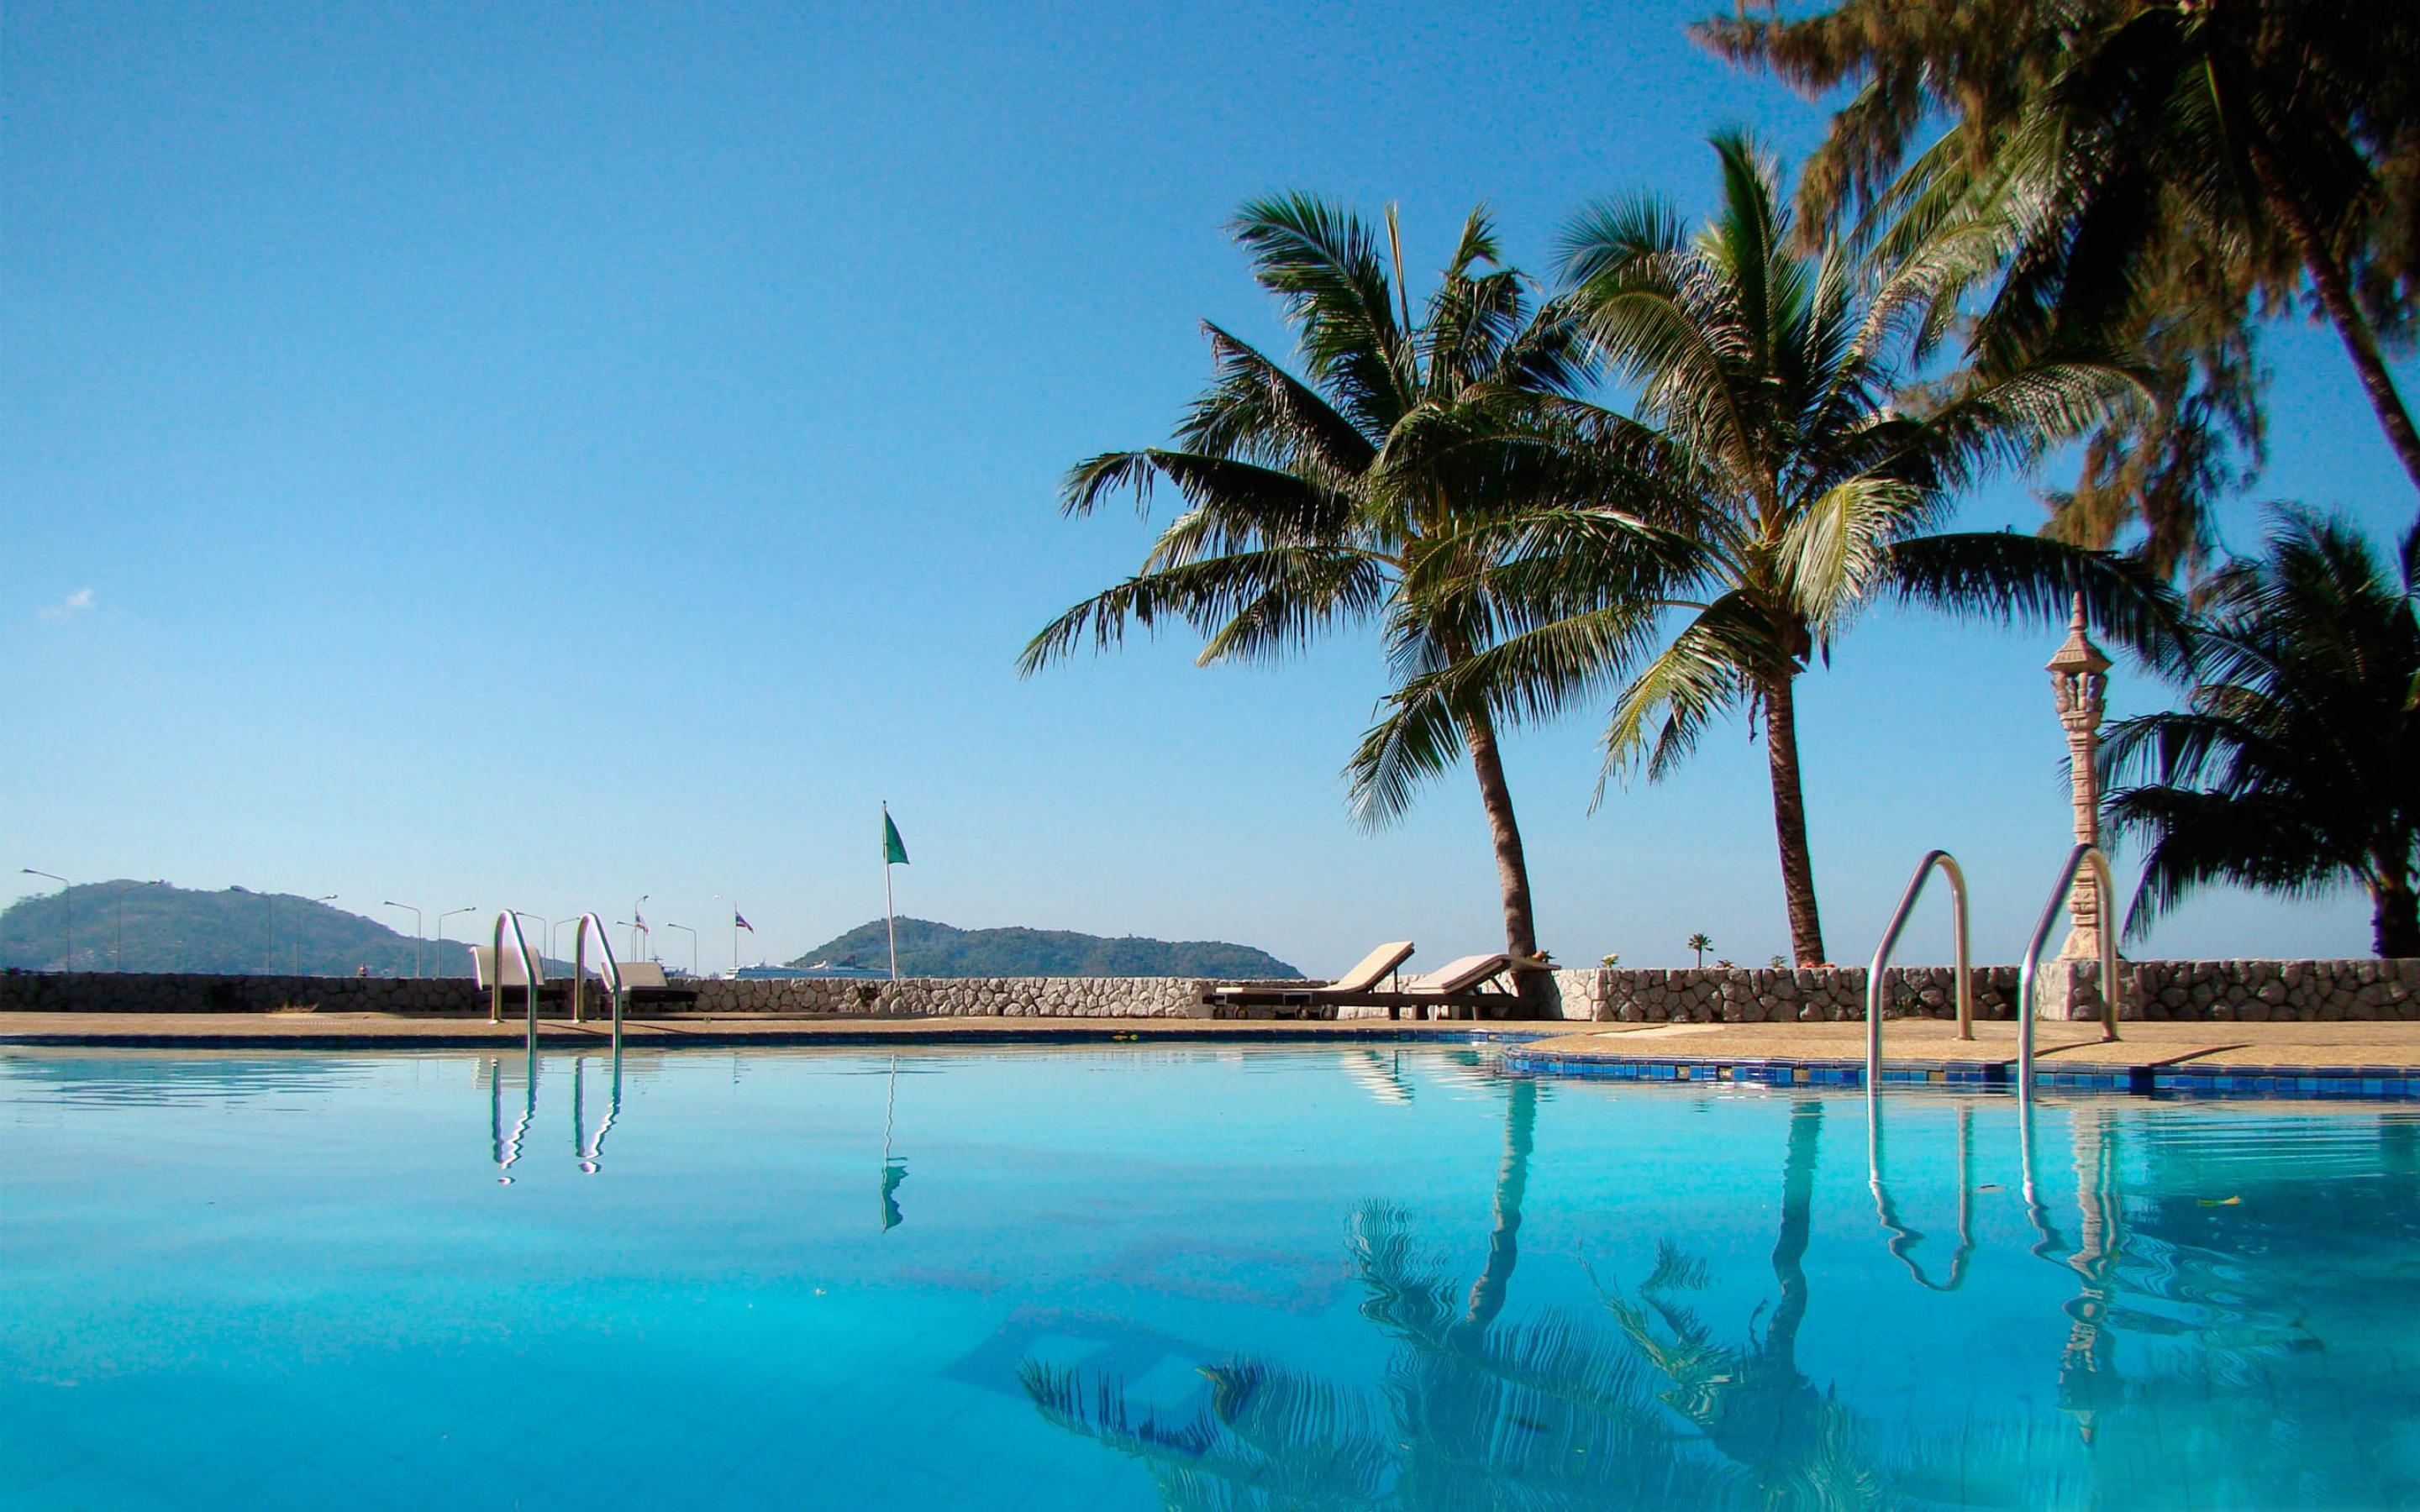 Pool and palm trees wallpapers and images - wallpapers, pictures ...